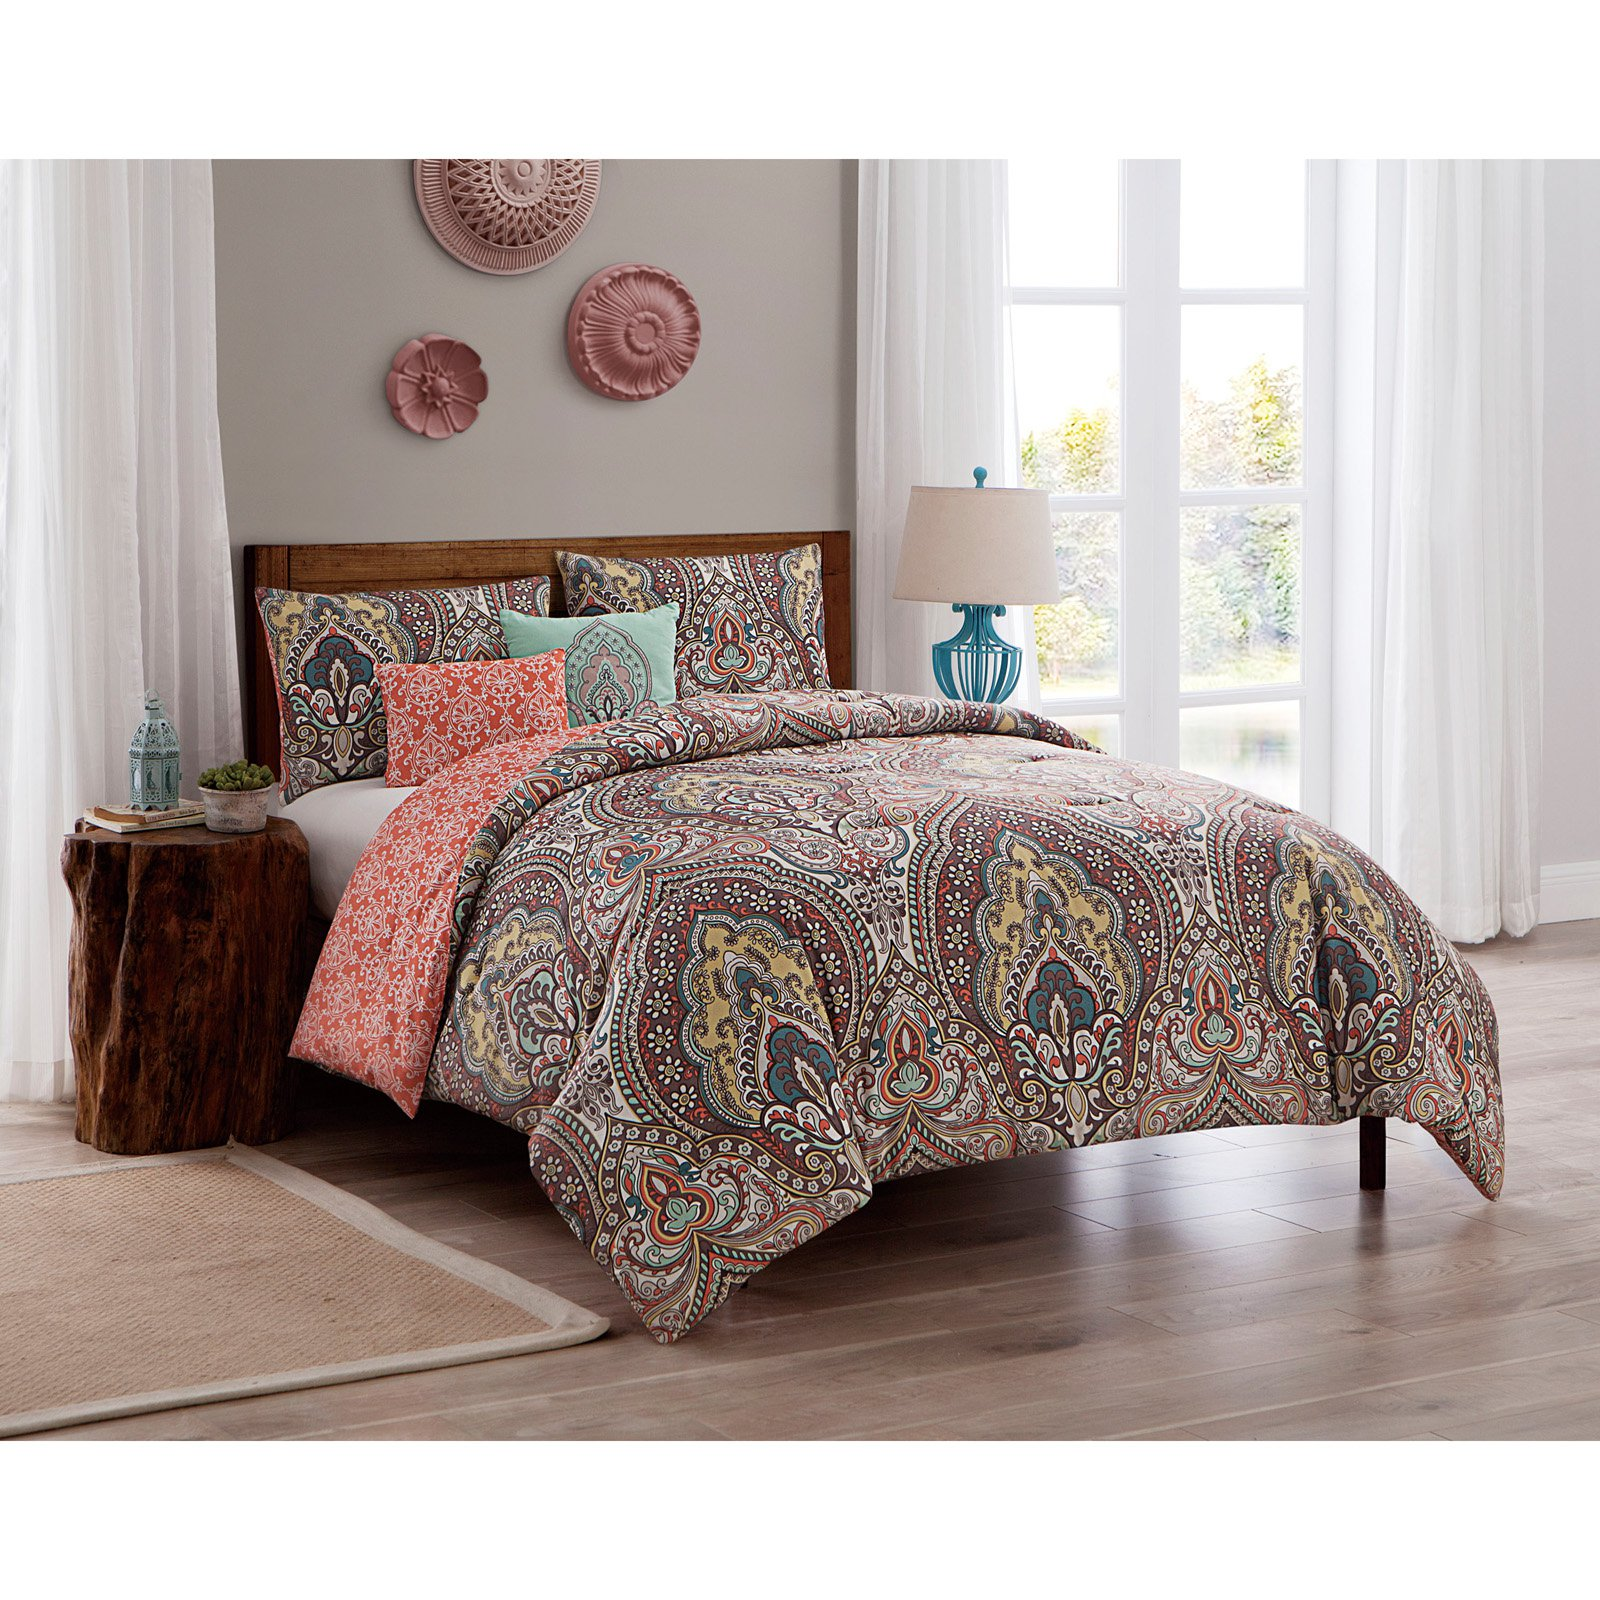 VCNY Home Palaci Damask Printed 4/5 Piece Bedding Comforter Set, Shams and Decorative Pillow Included